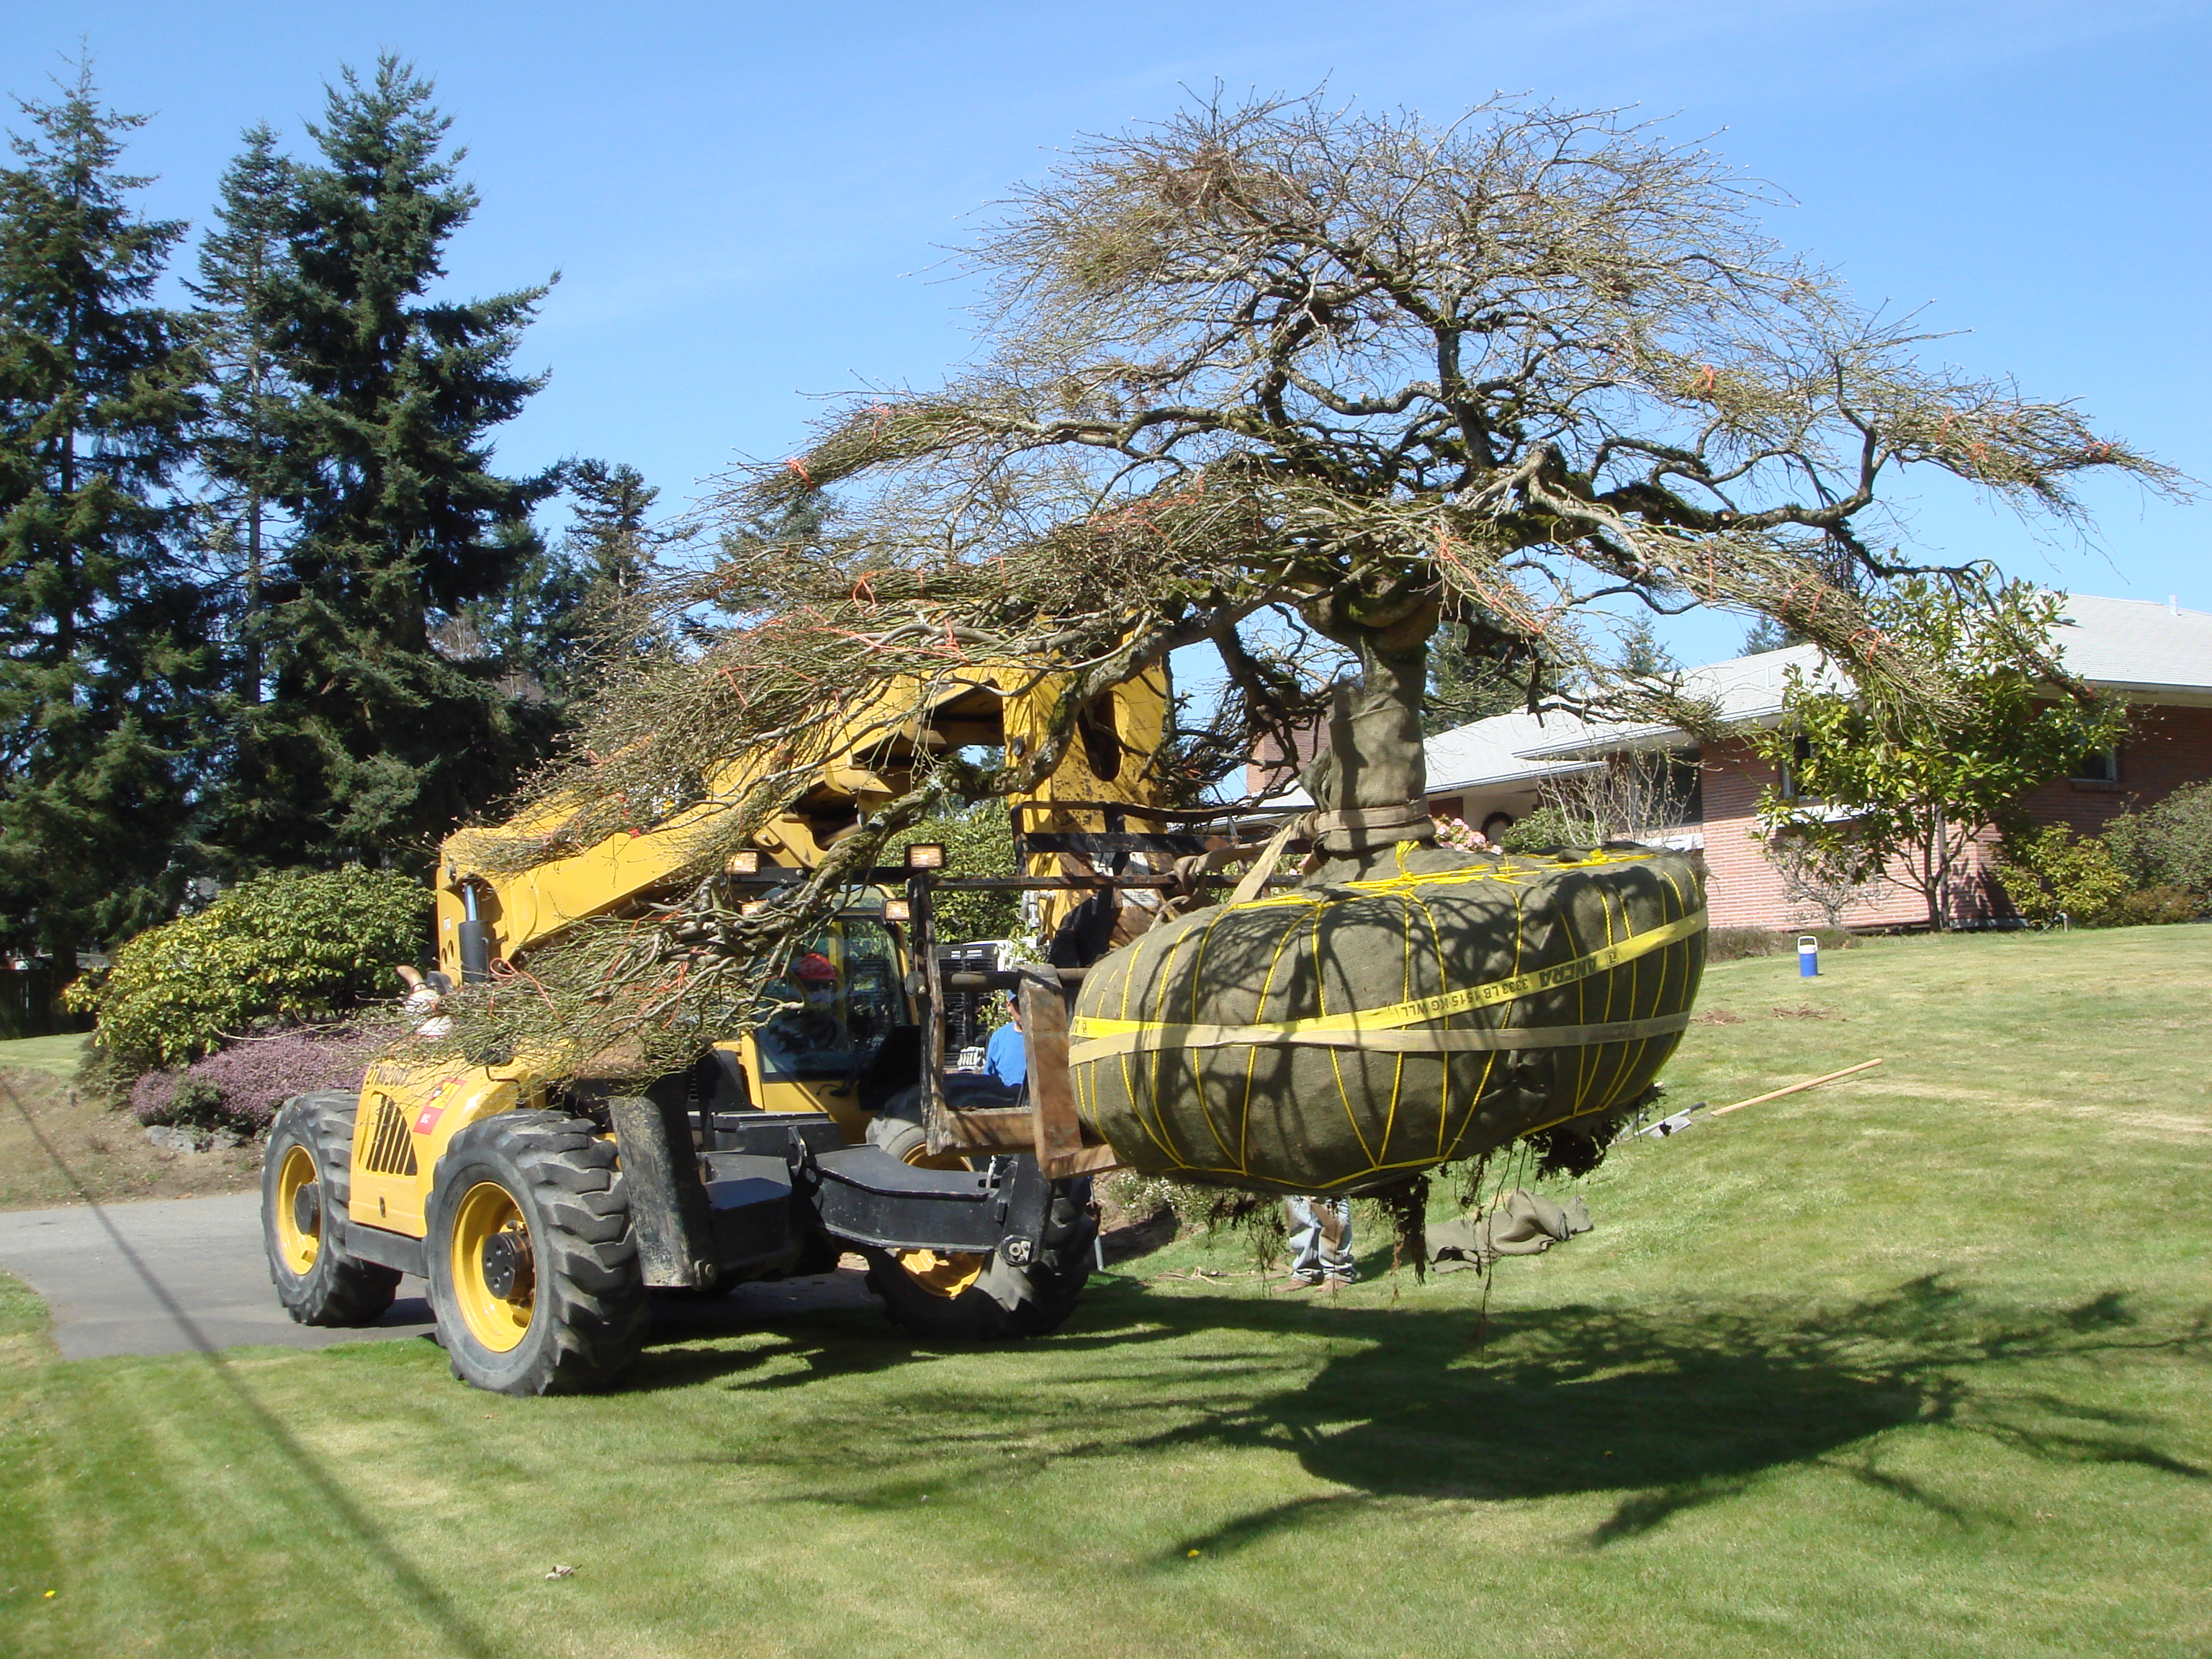 Where To Transplant A Tree On City Property